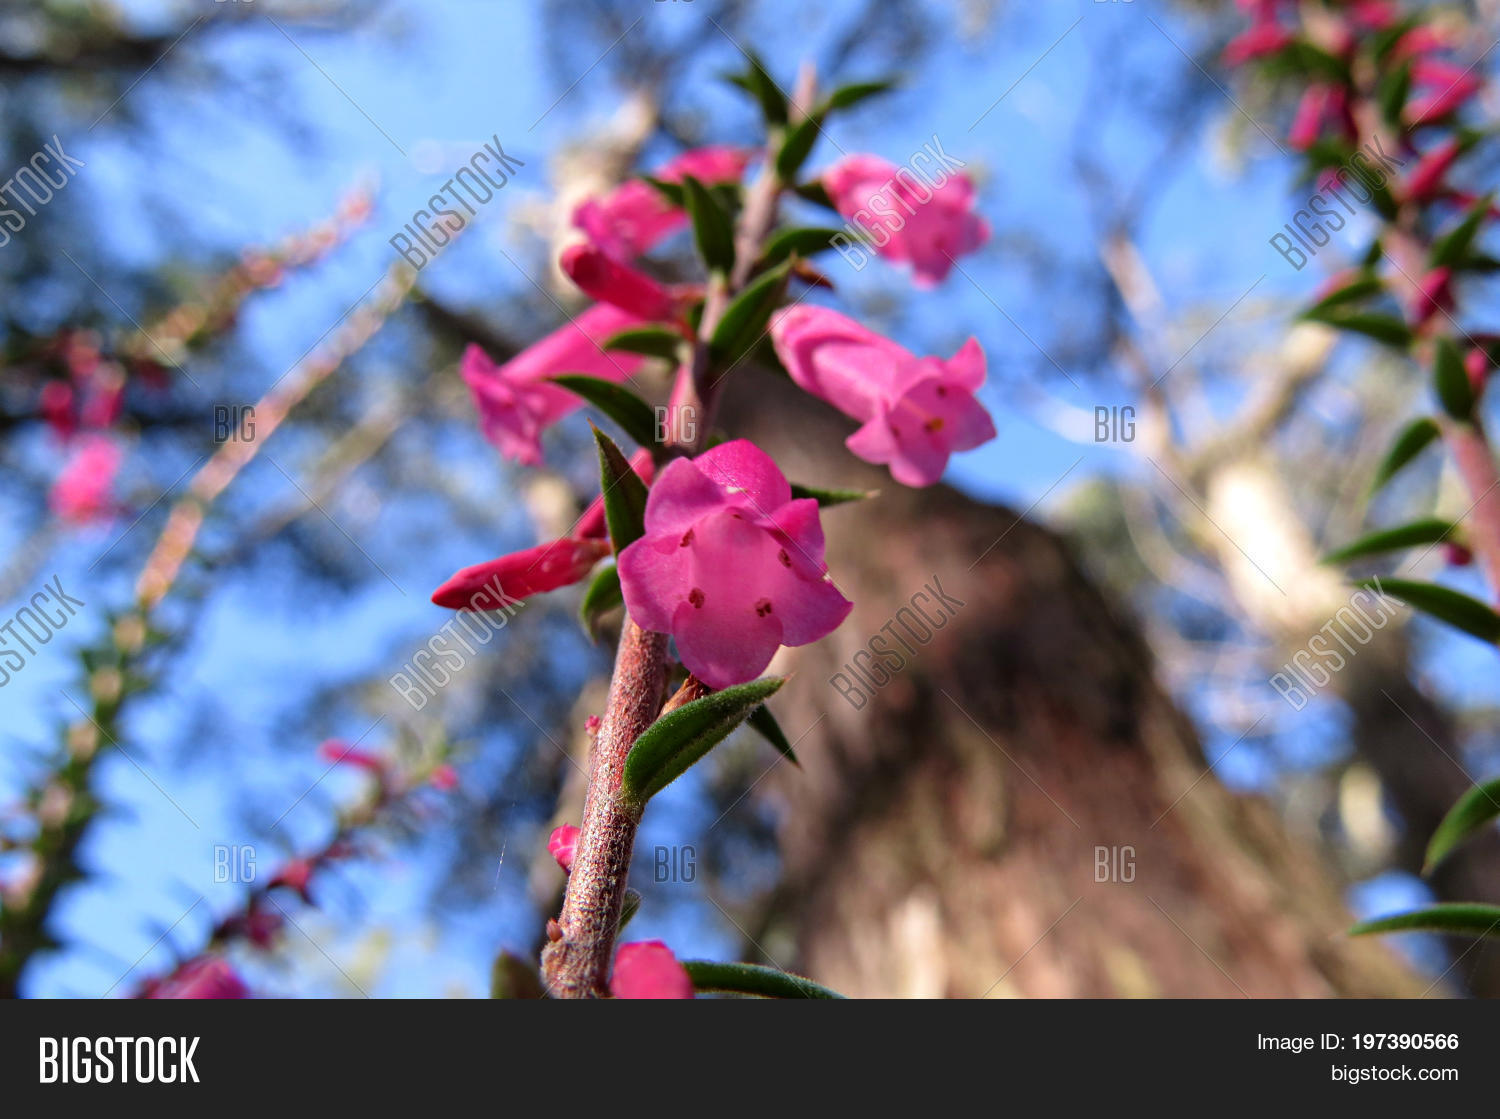 Pink Correa Flowers Image Photo Free Trial Bigstock